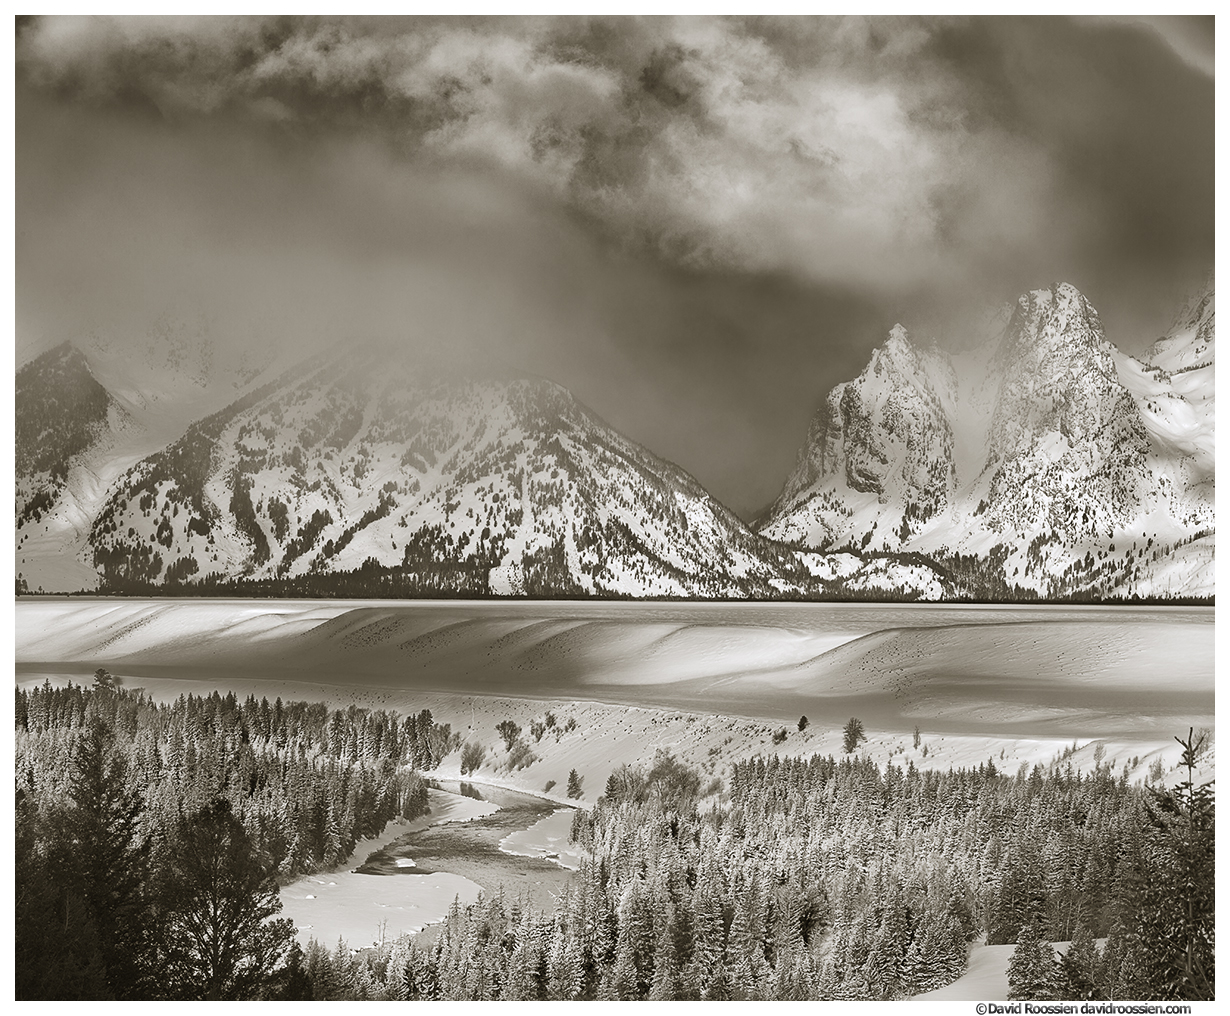 Clearing Winter Storm, Snake River Overlook, Grand Tetons National Park, Wyoming, Winter 2014